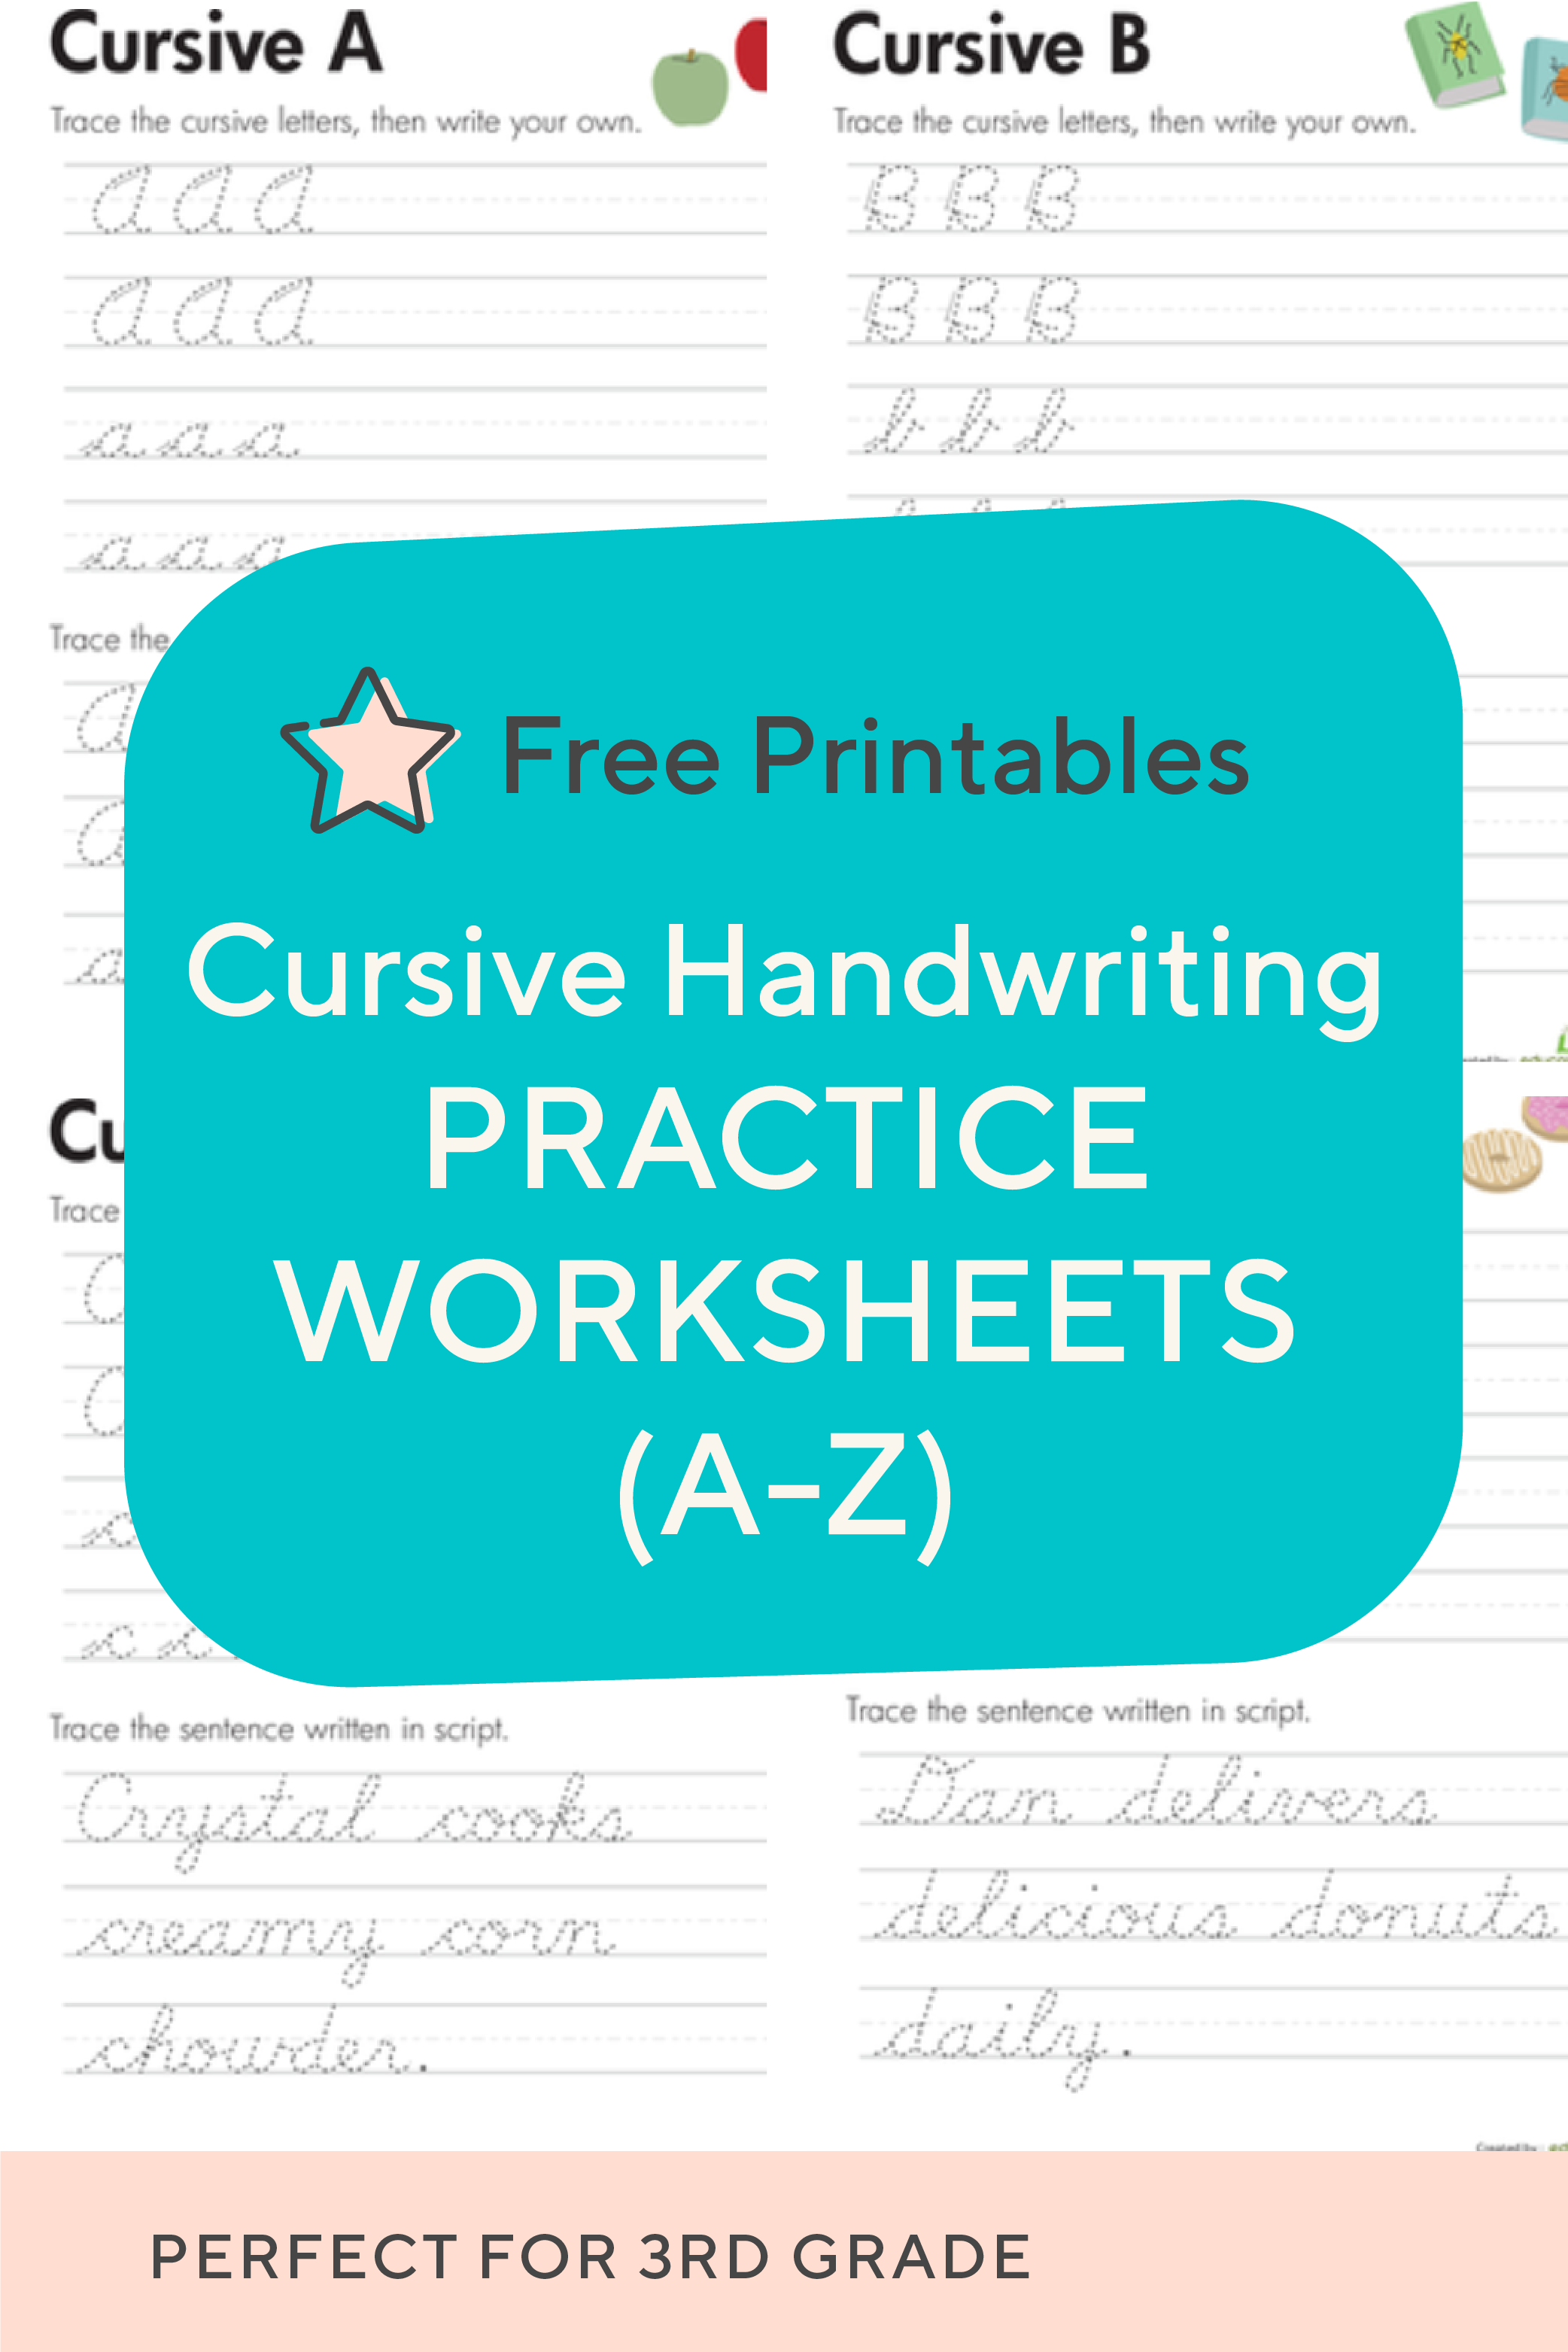 Practice Cursive Letters A Z With Free Cursive Handwriting